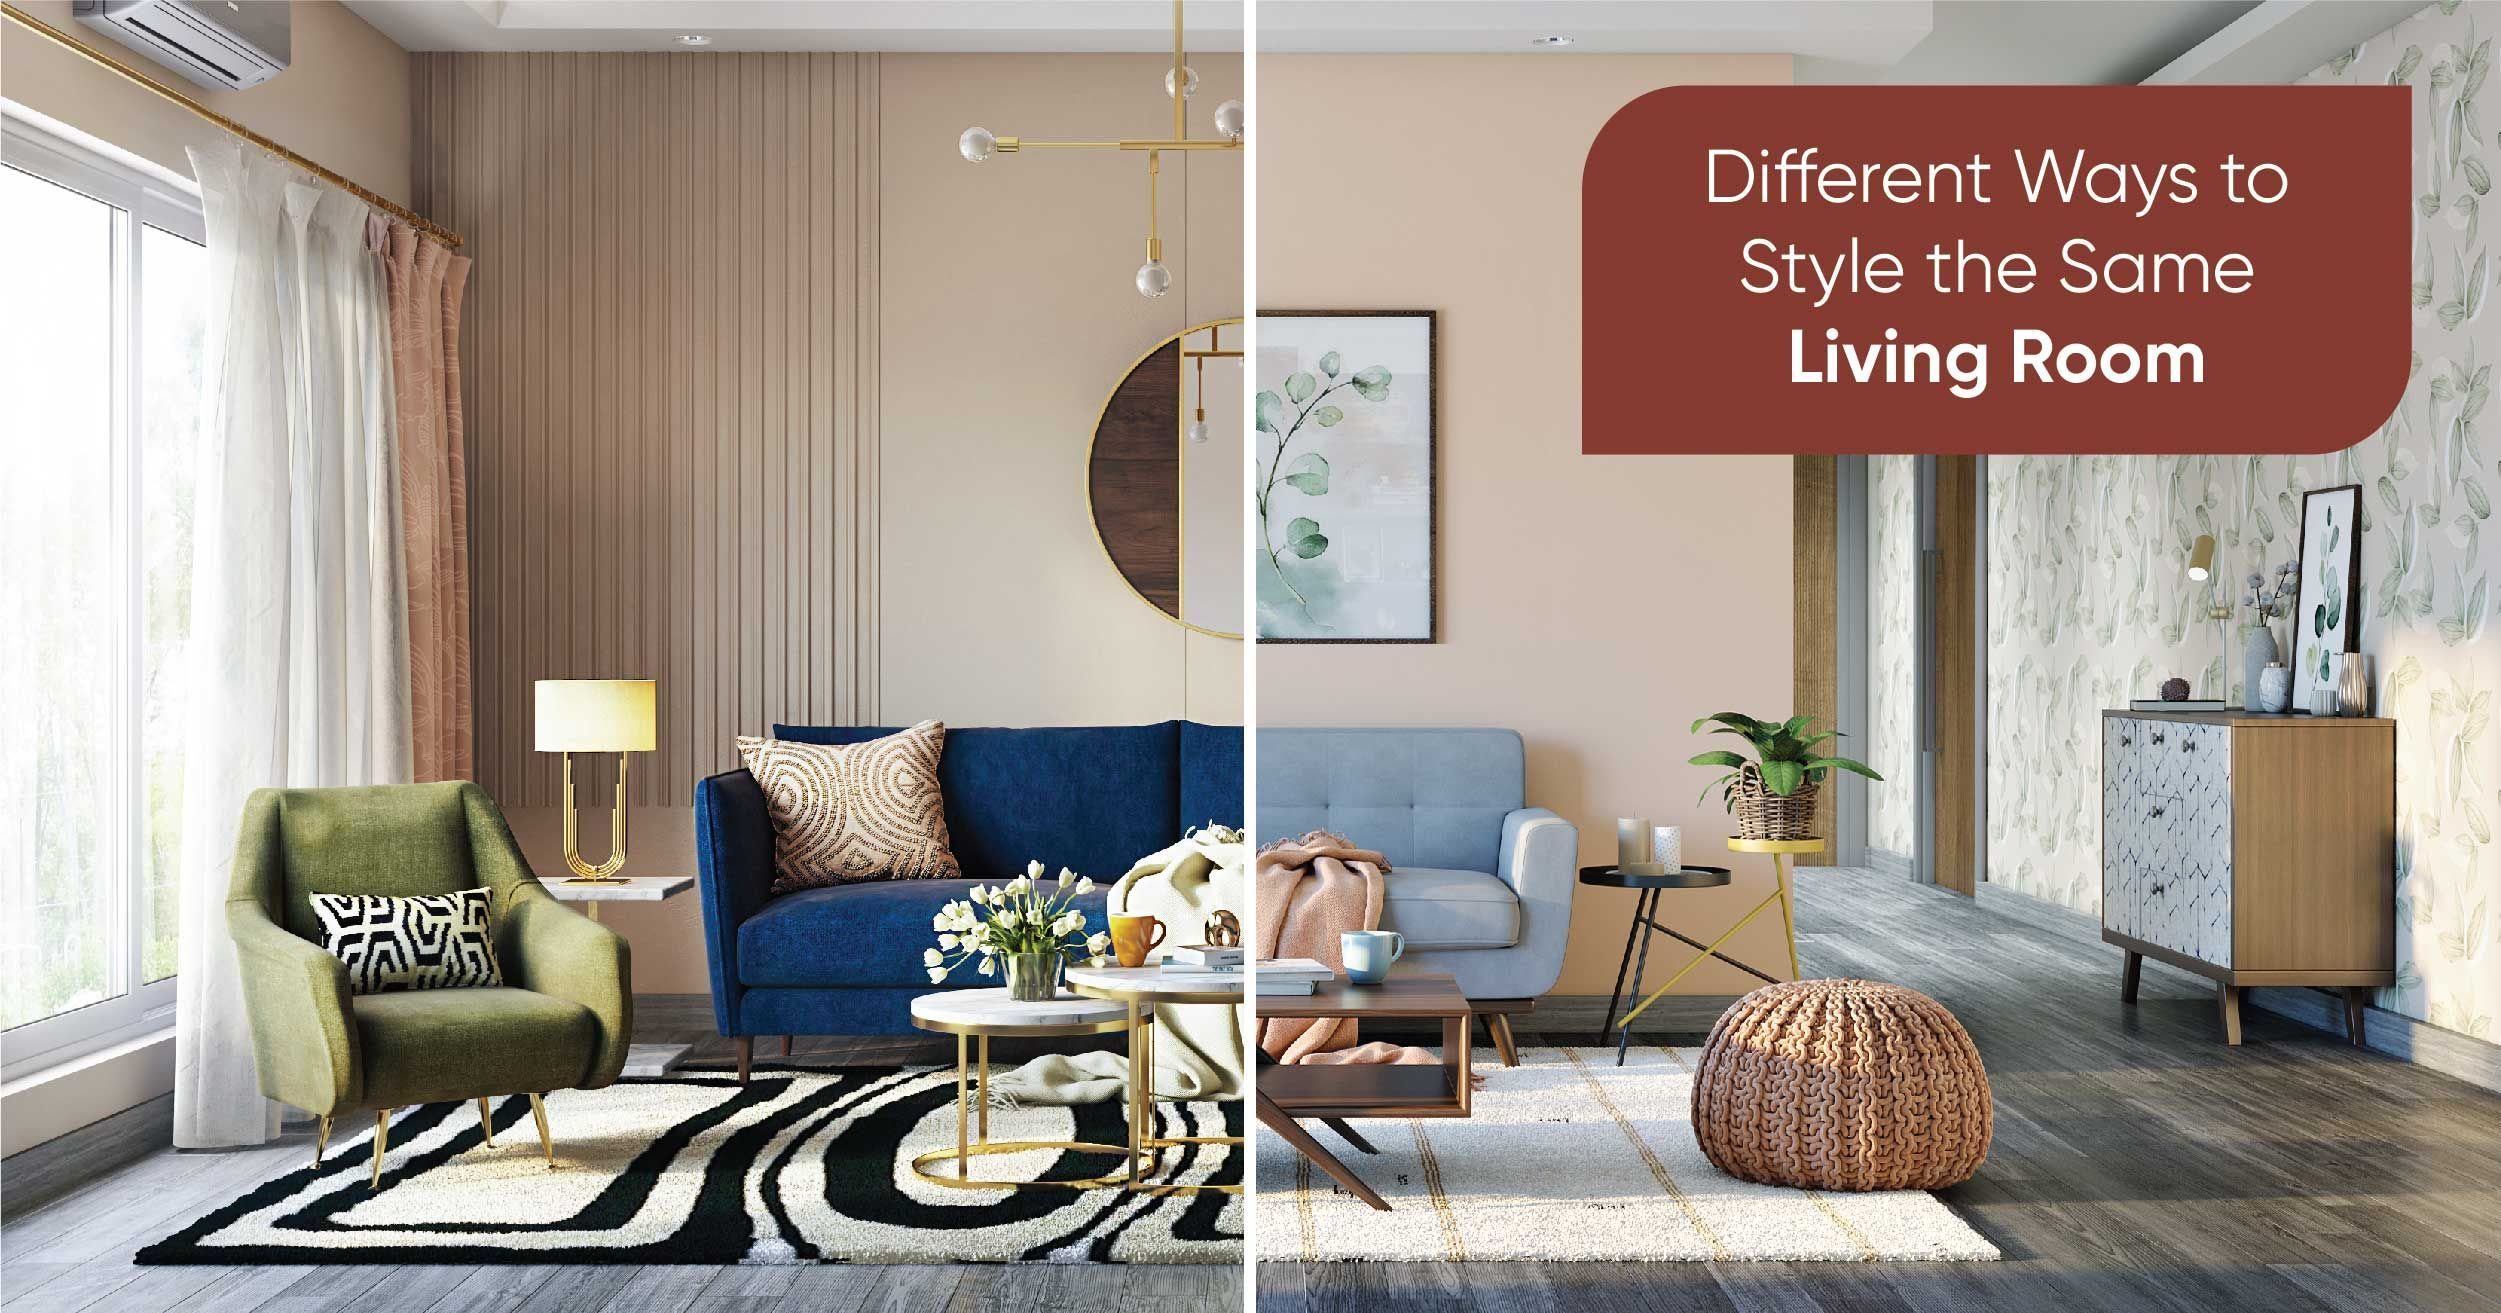 We Applied 5 Different Styles To The Same Living Room